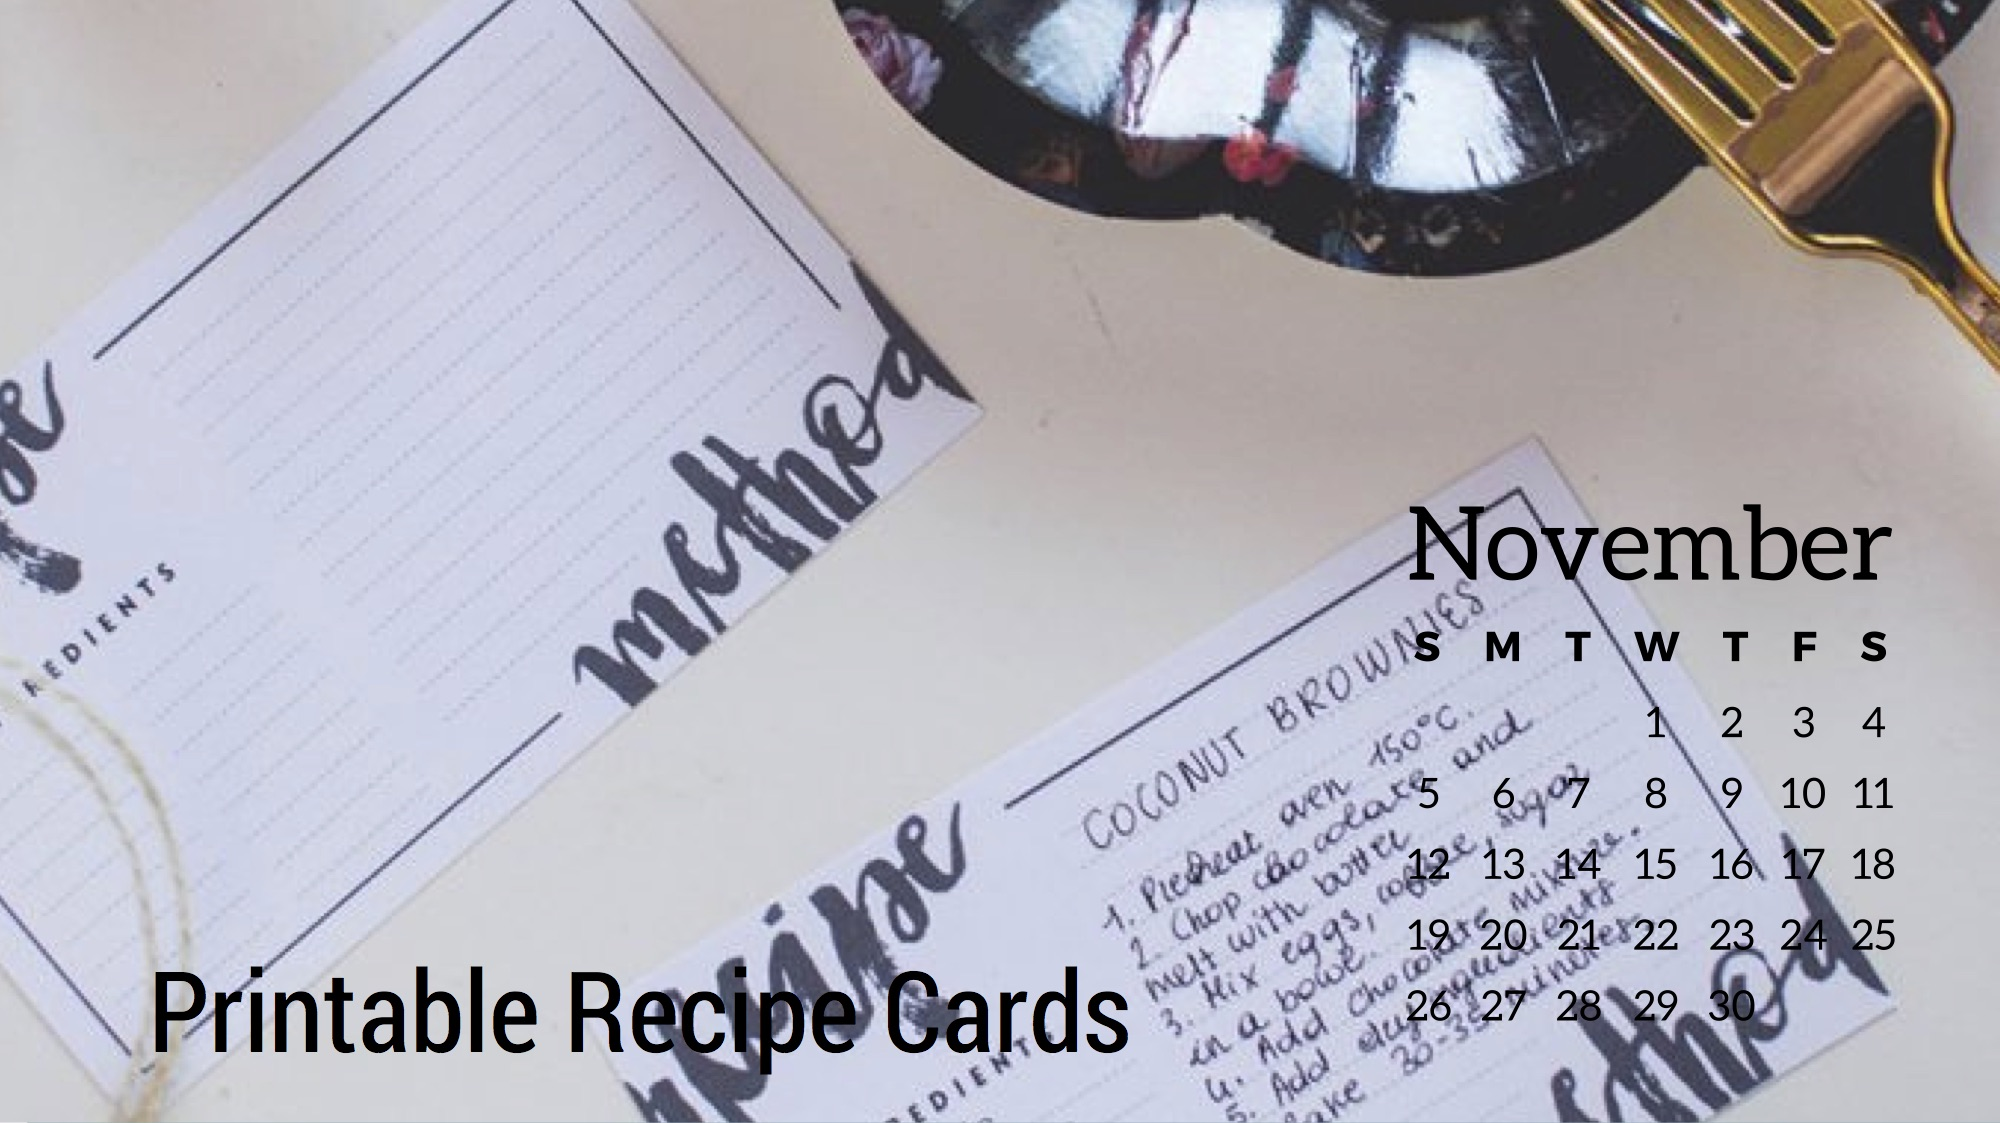 11-november-2017-printable-craft-calendar-by-pop-shop-america